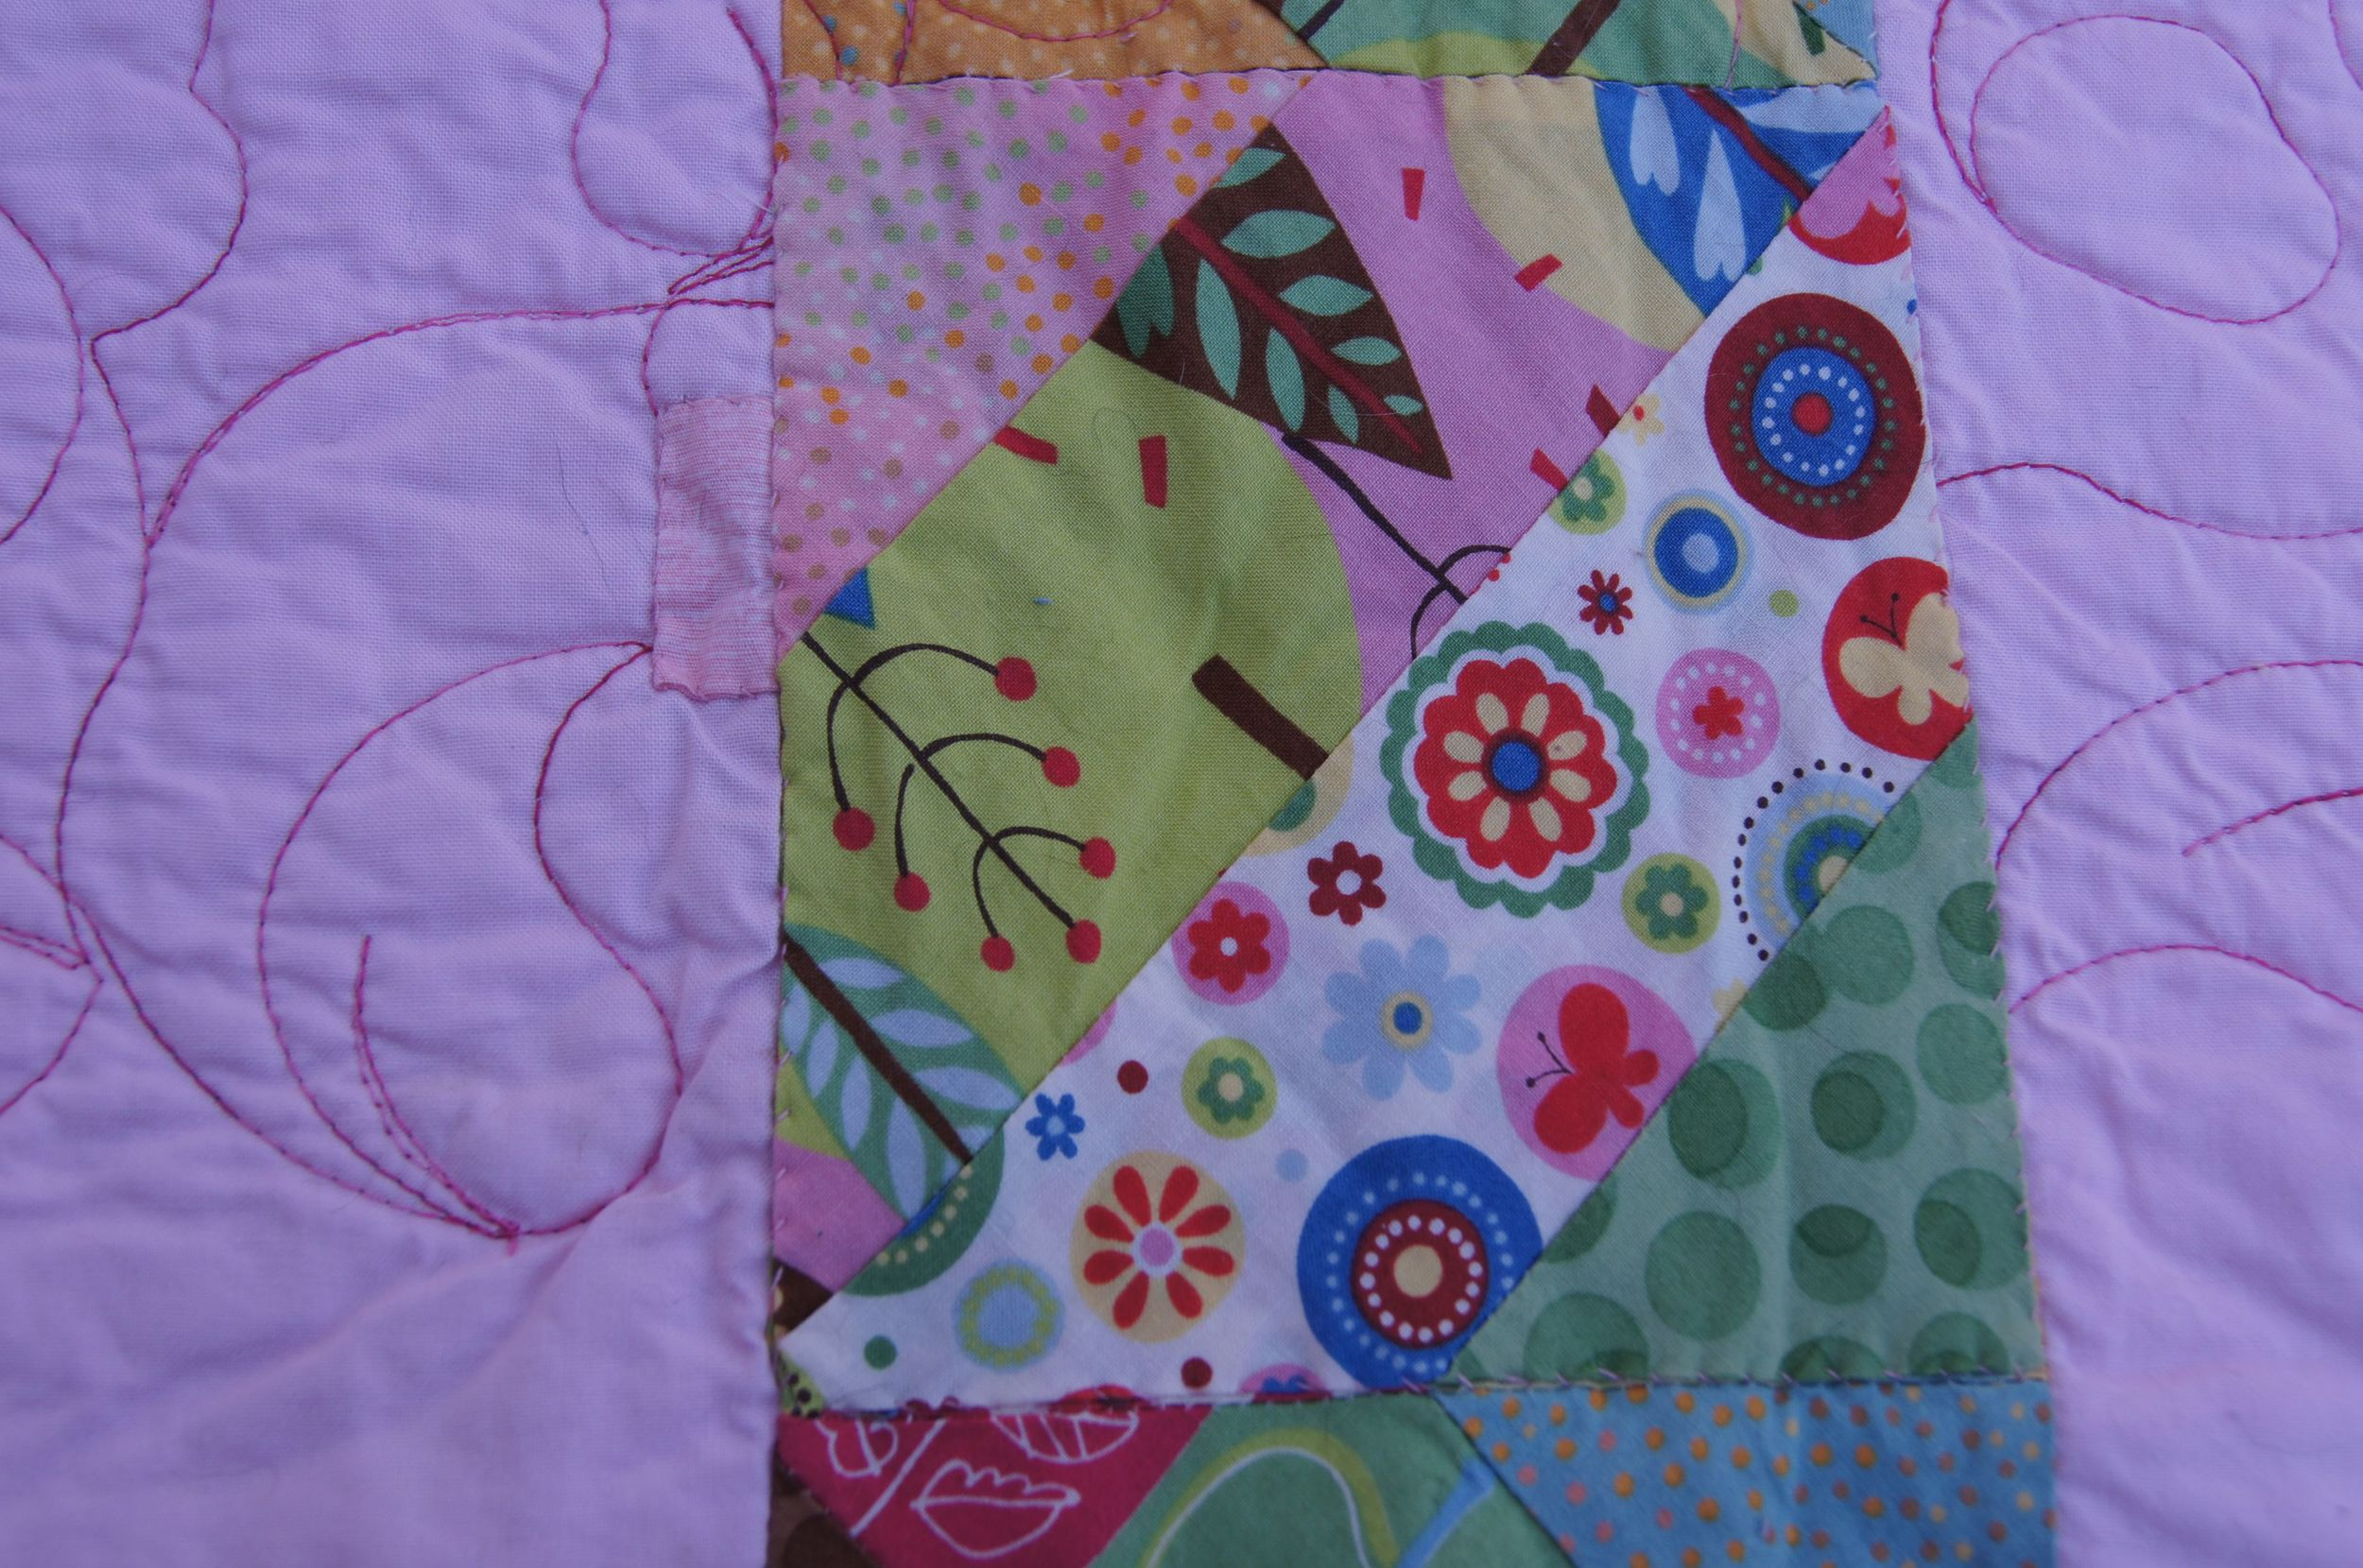 mending contemporary quilts — sleeping dog quilts - mending on the back of cats in trees quilt